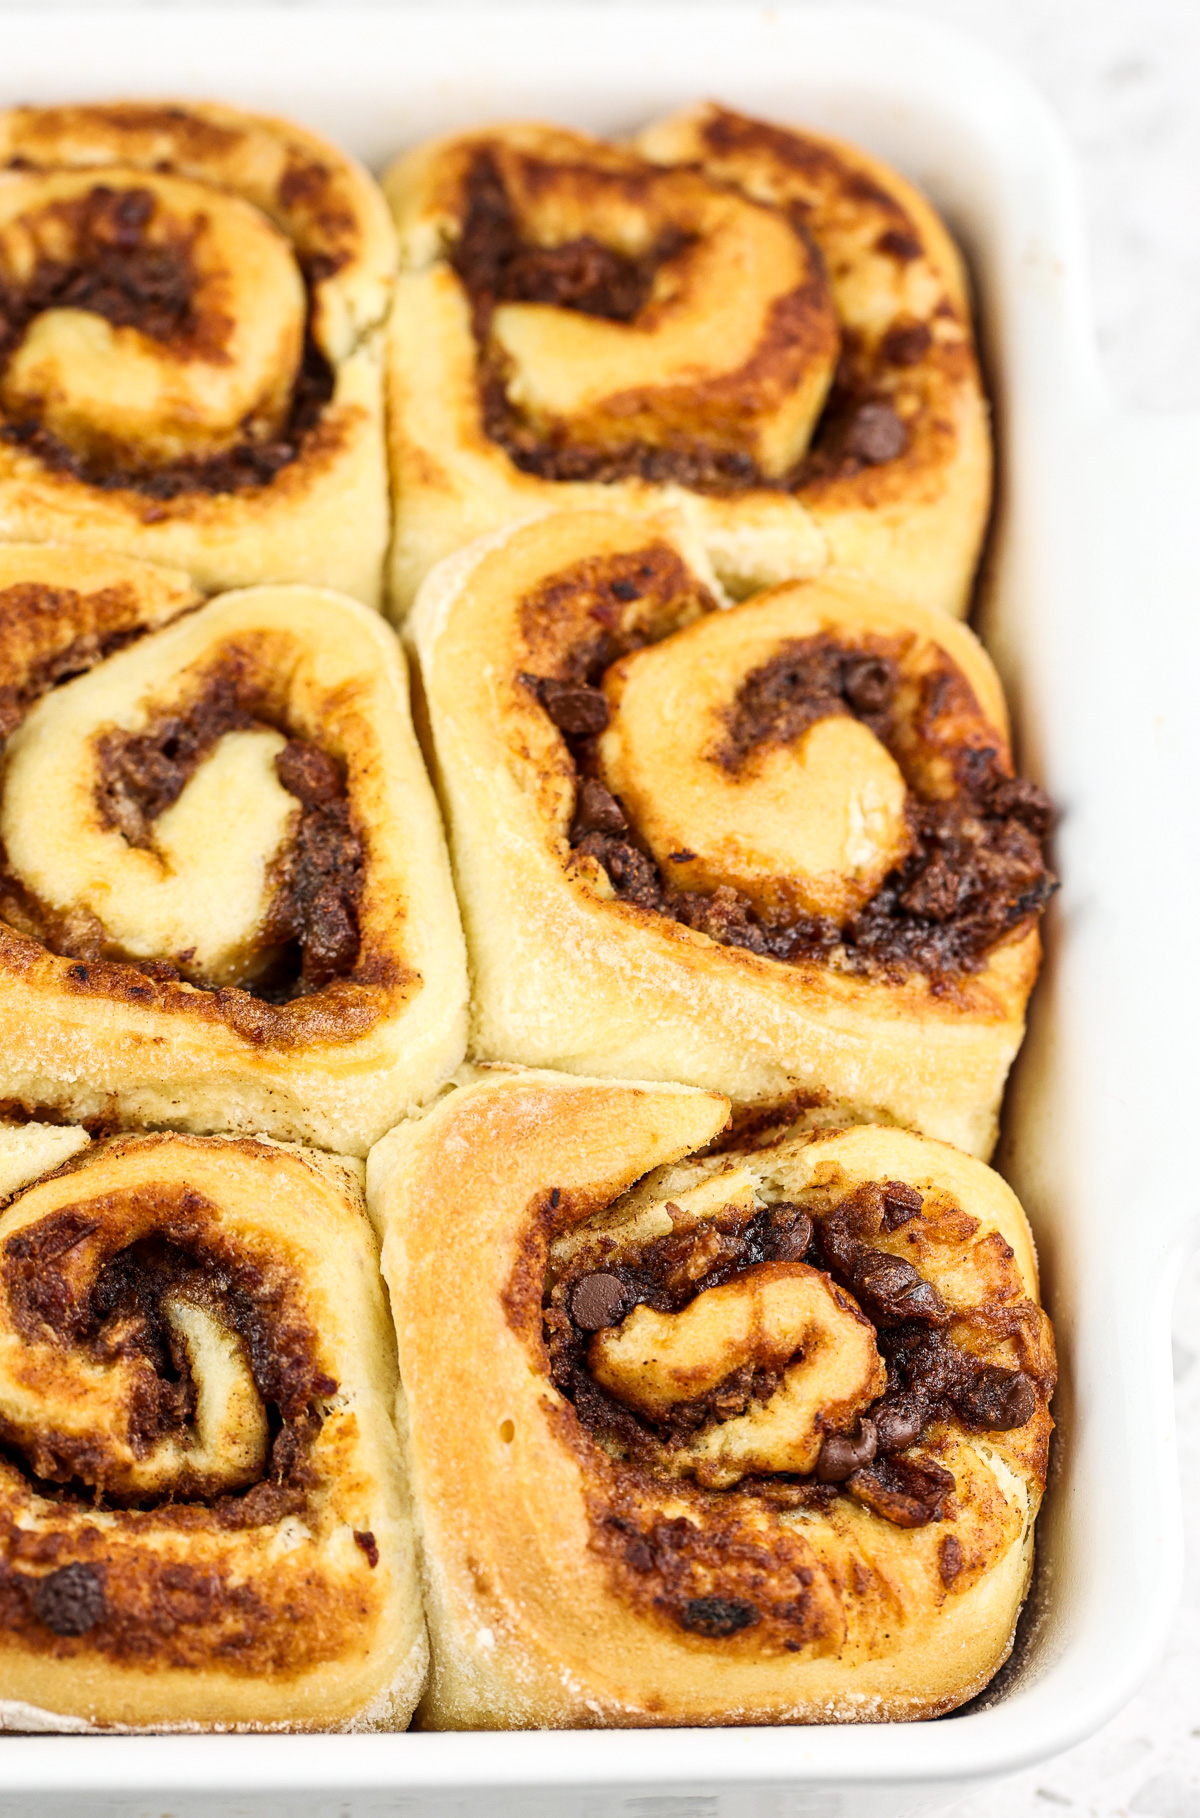 Brown Cinnamon Rolls in a white baking dish with a brown date filling peaking out.